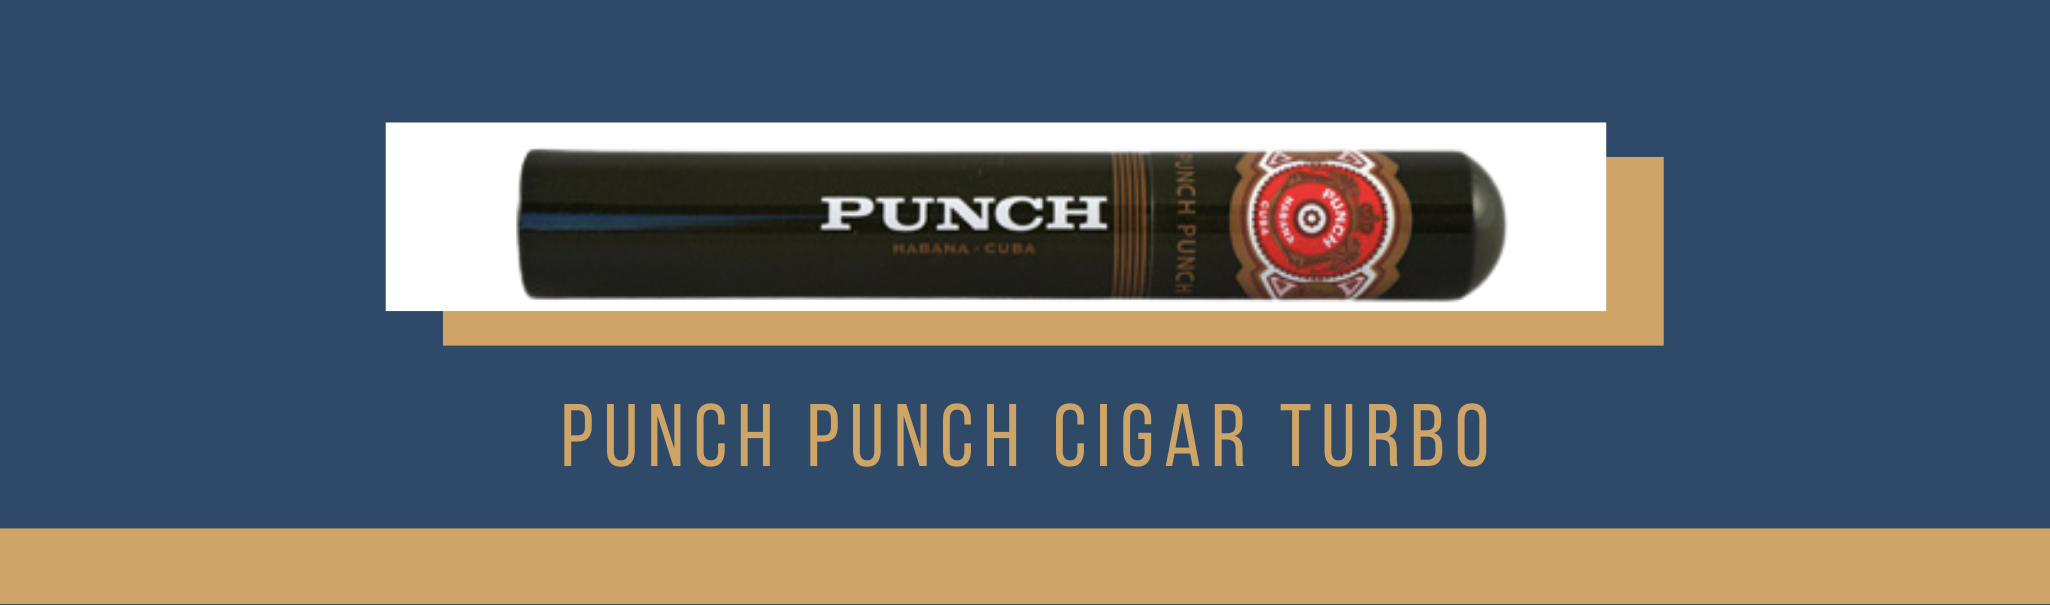 Buy the Punch Punch Cigar Turbo now